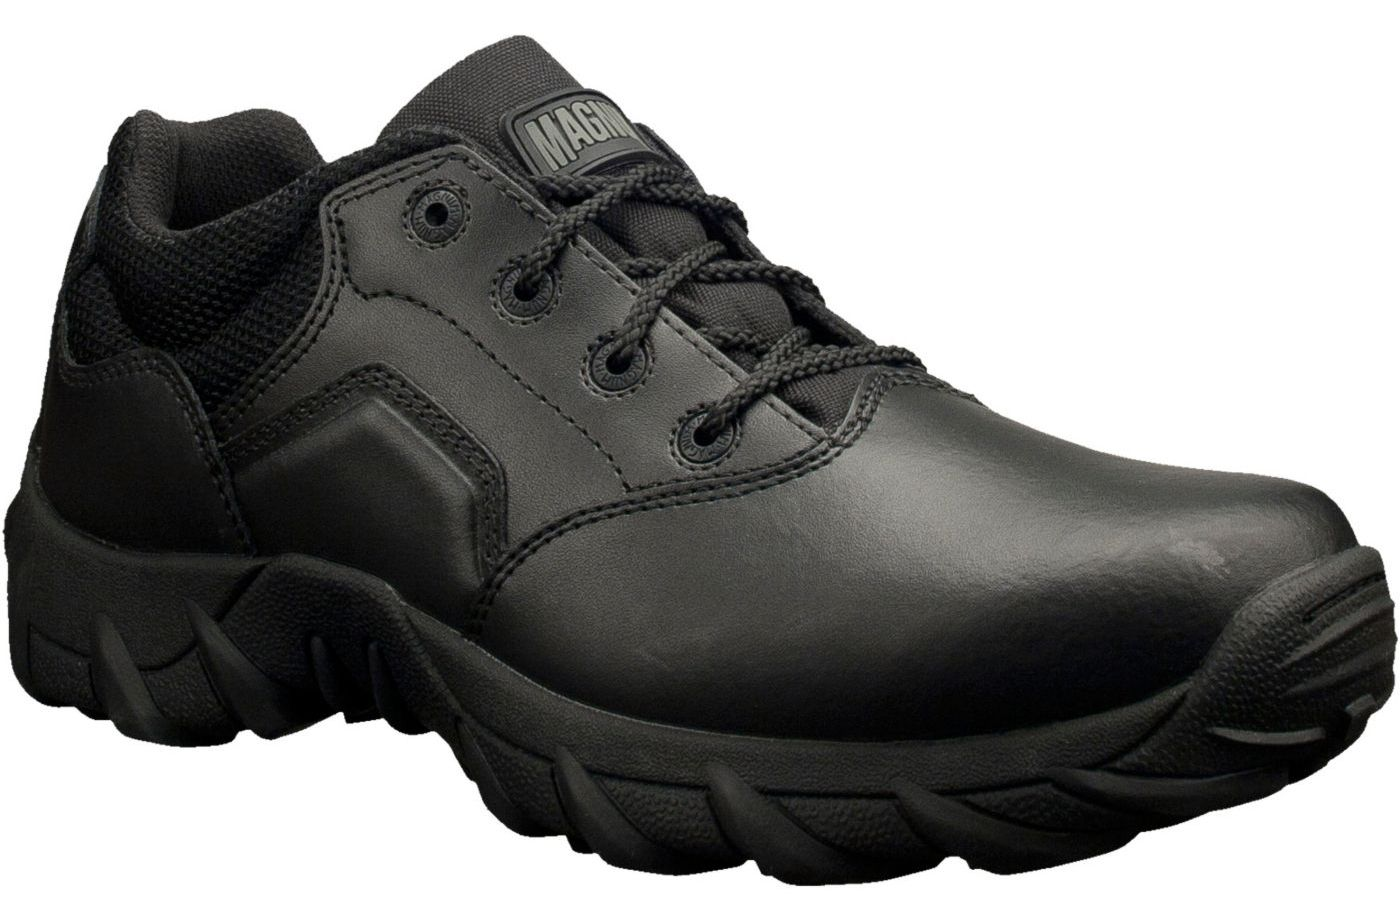 Magnum 5369 Cobra 3.0 Leather Work Shoes. You save $62.01